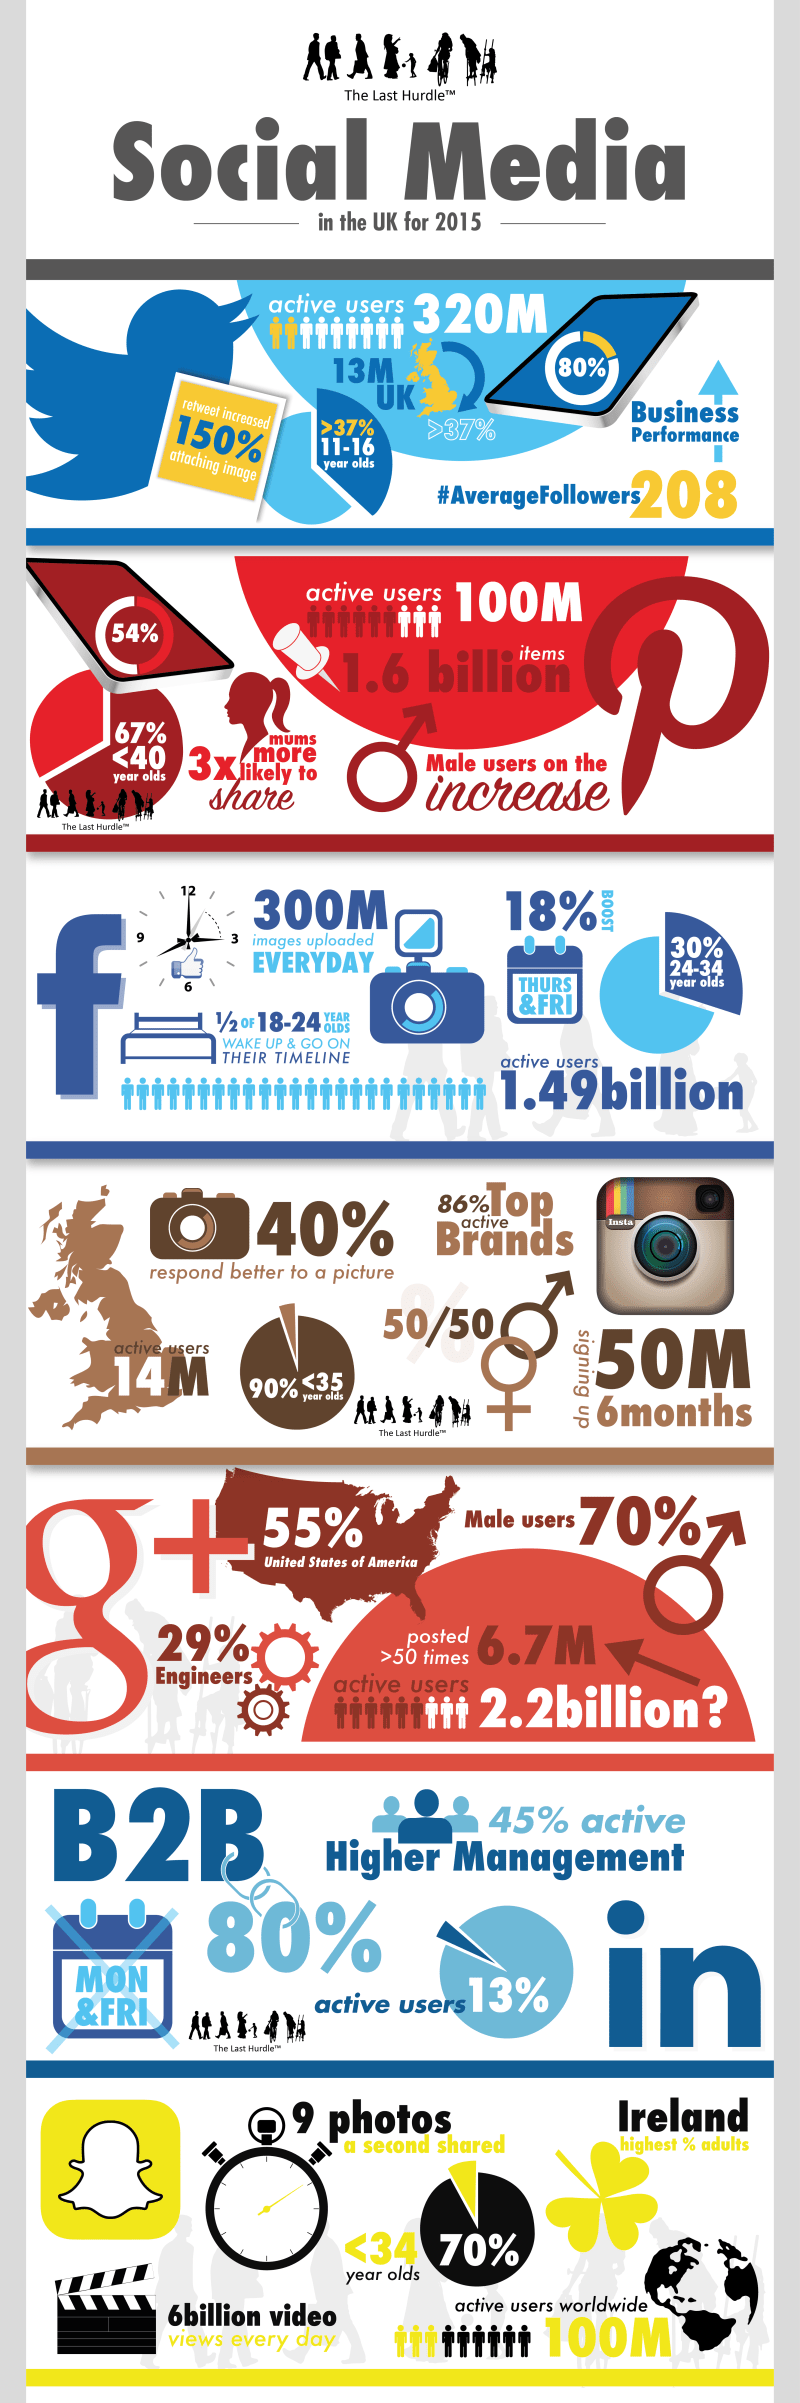 Social Media User Statistics in the UK